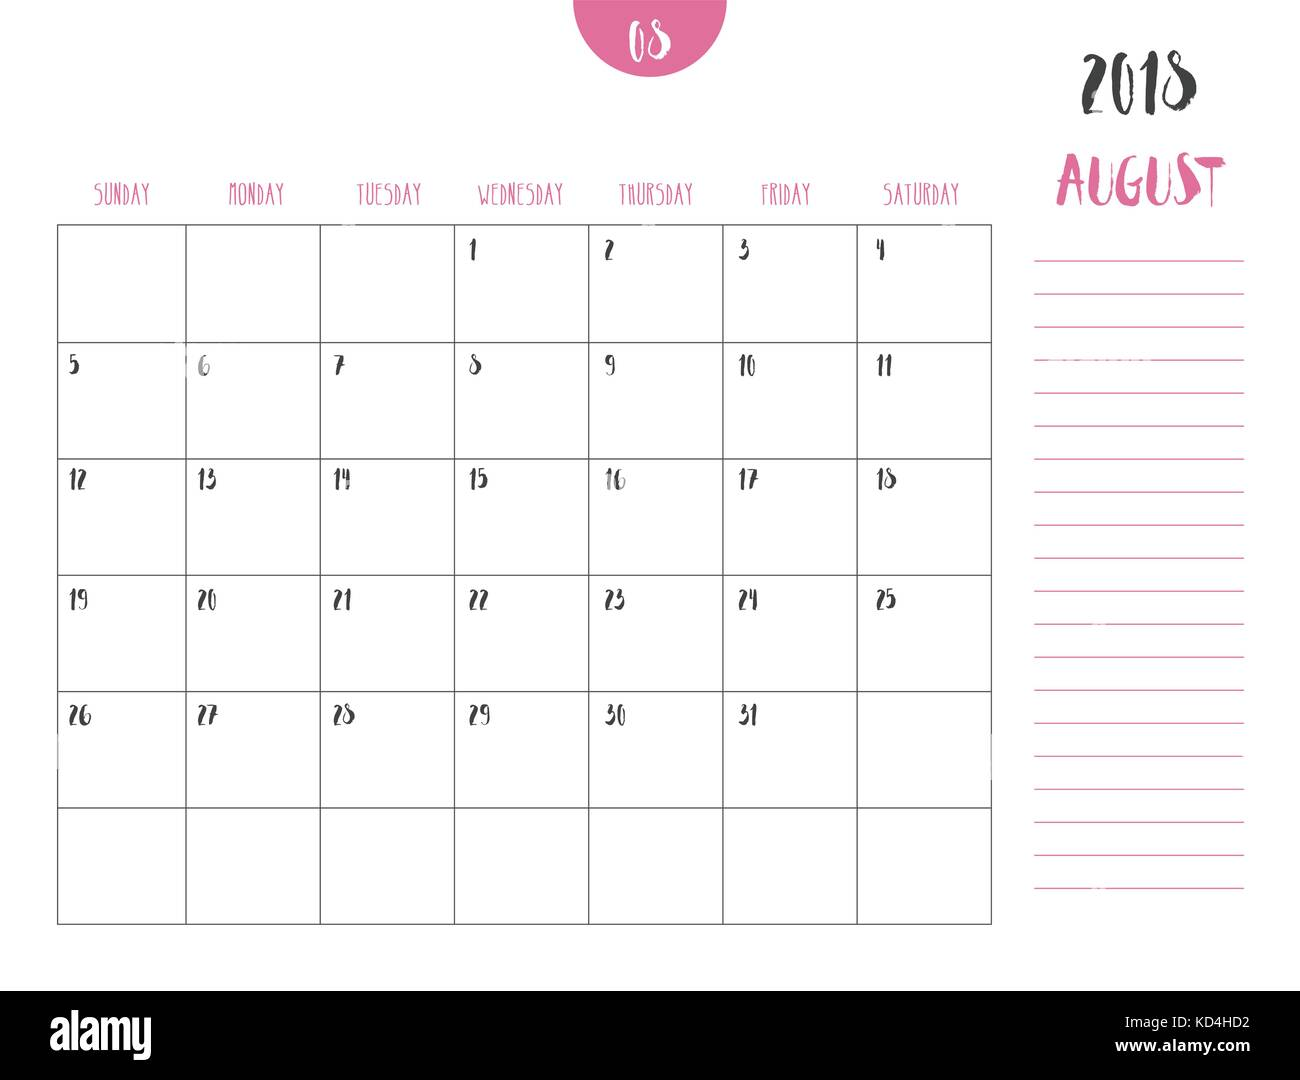 vector of calendar 2018 august in simple clean table style with note line in earth tone color themefull size 21 x 16 cmweek start on sunday